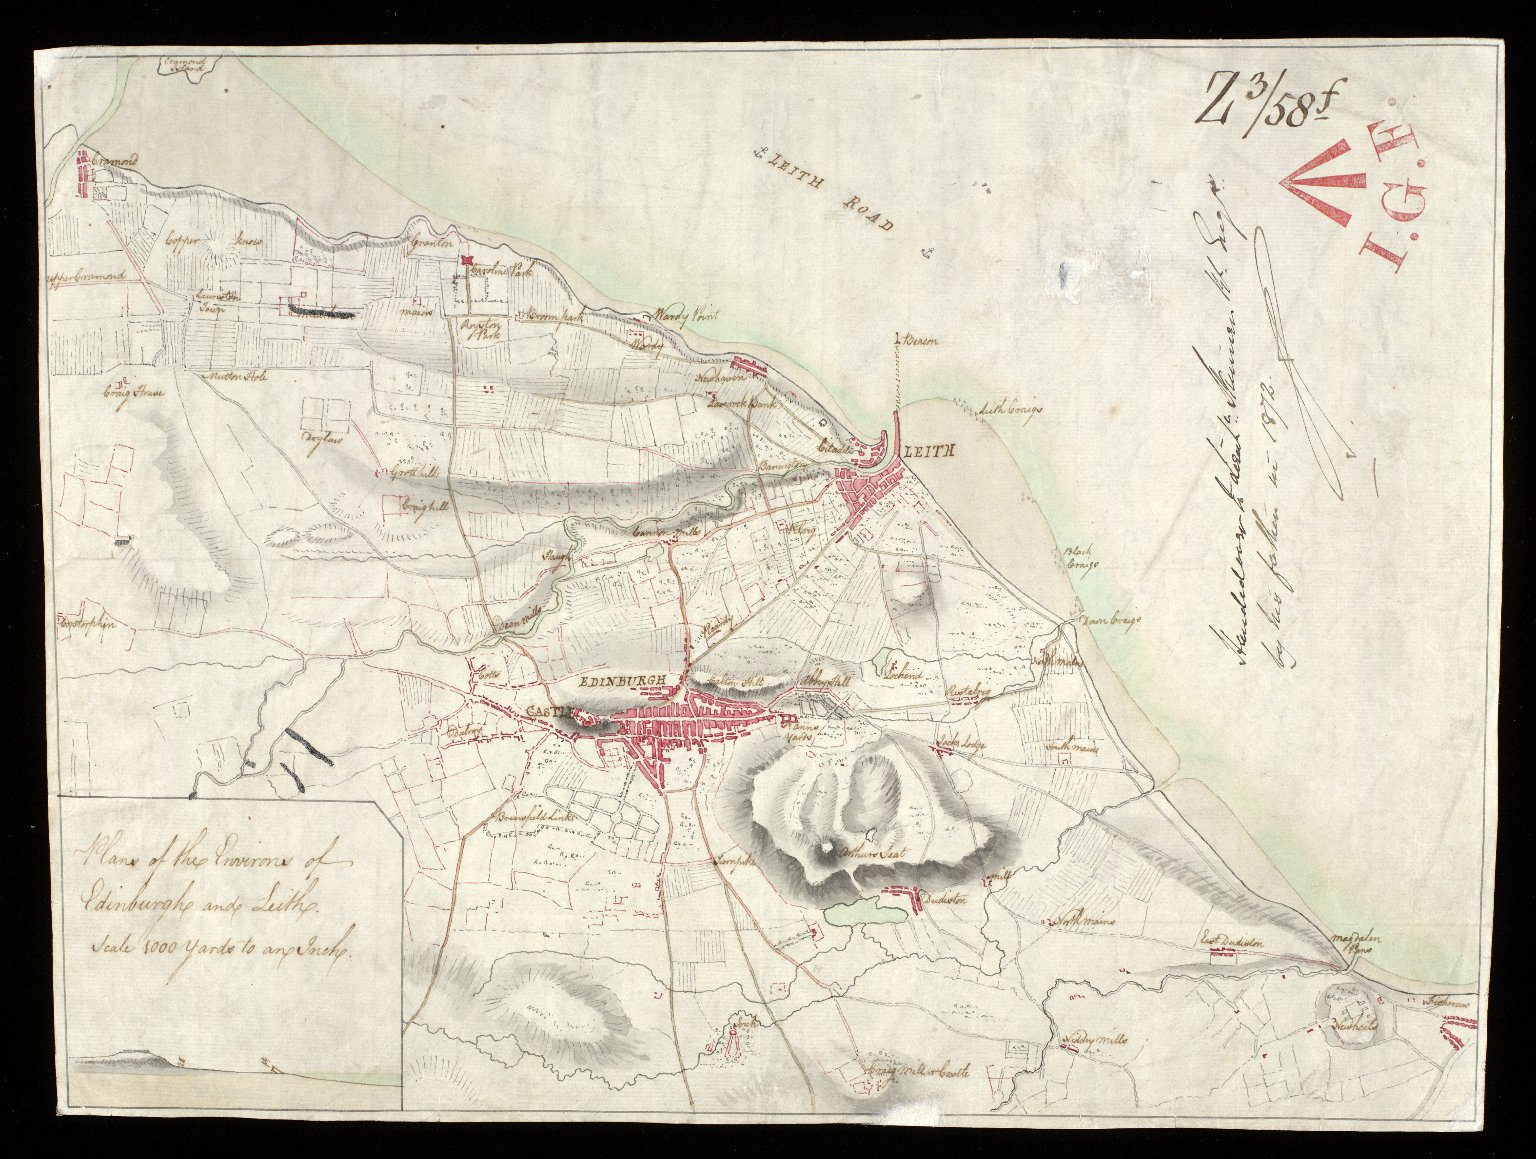 Plans of the environs of Edinburgh & Leith [1 of 1]